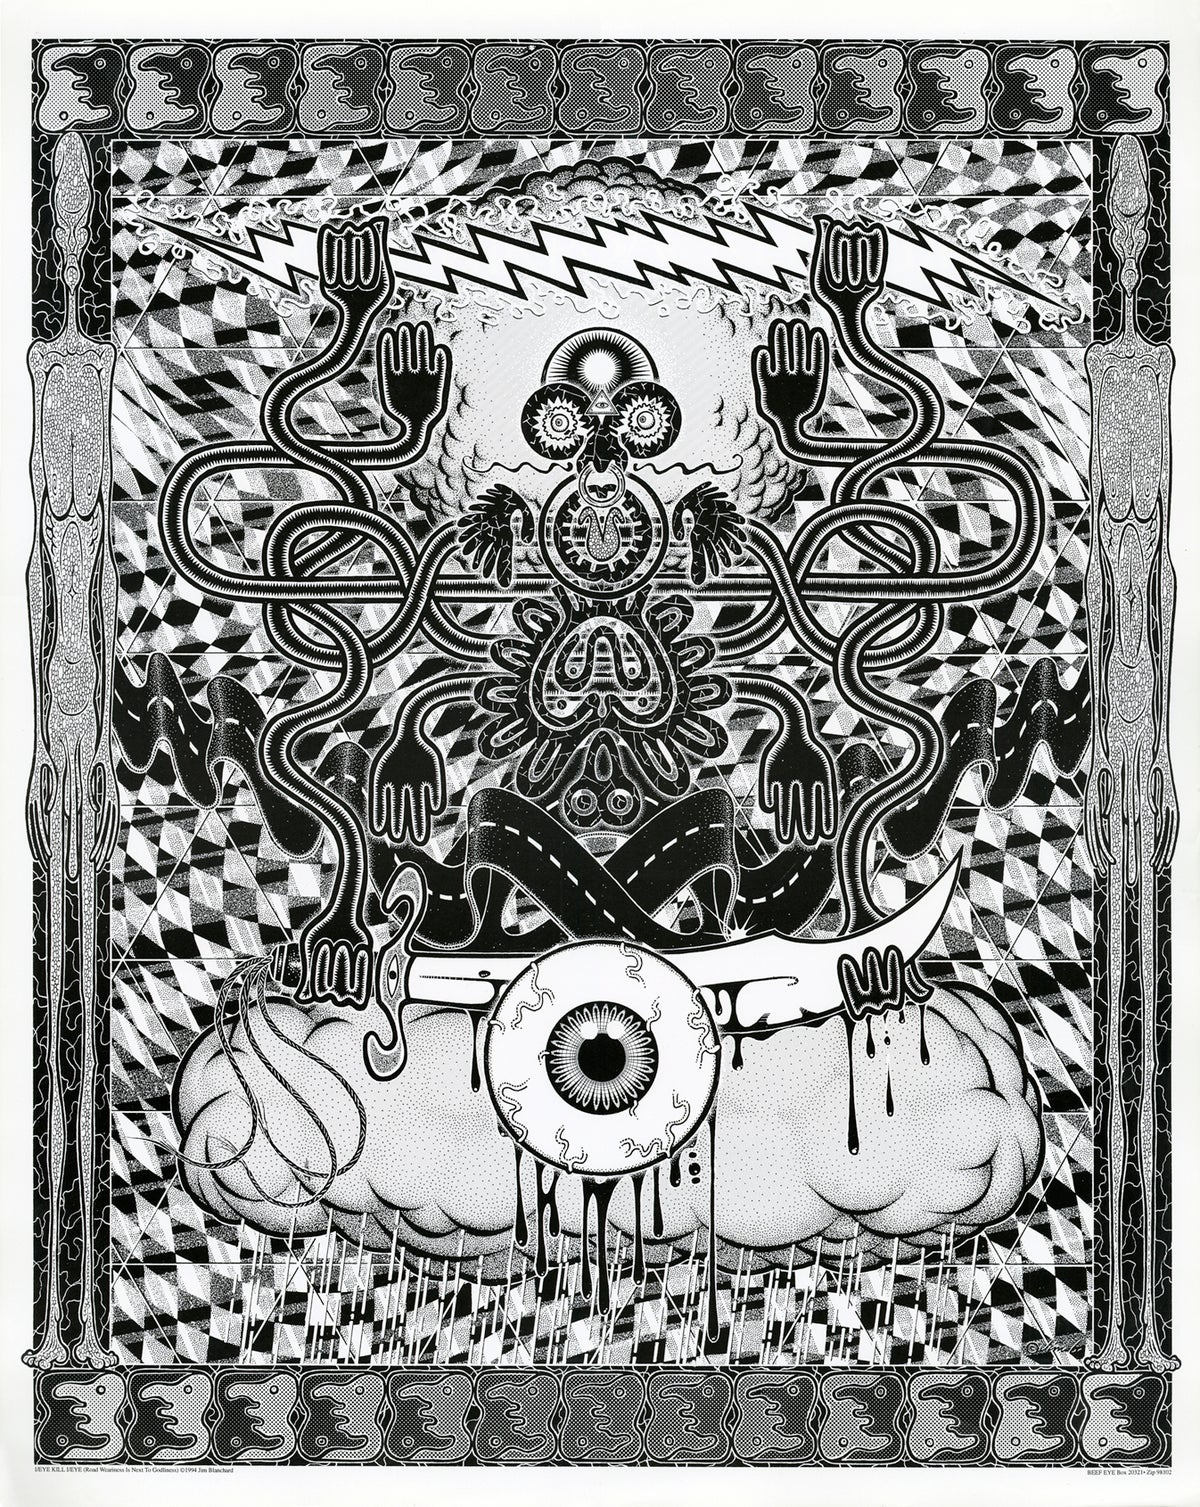 Image of EYE/I KILL I/EYE litho print